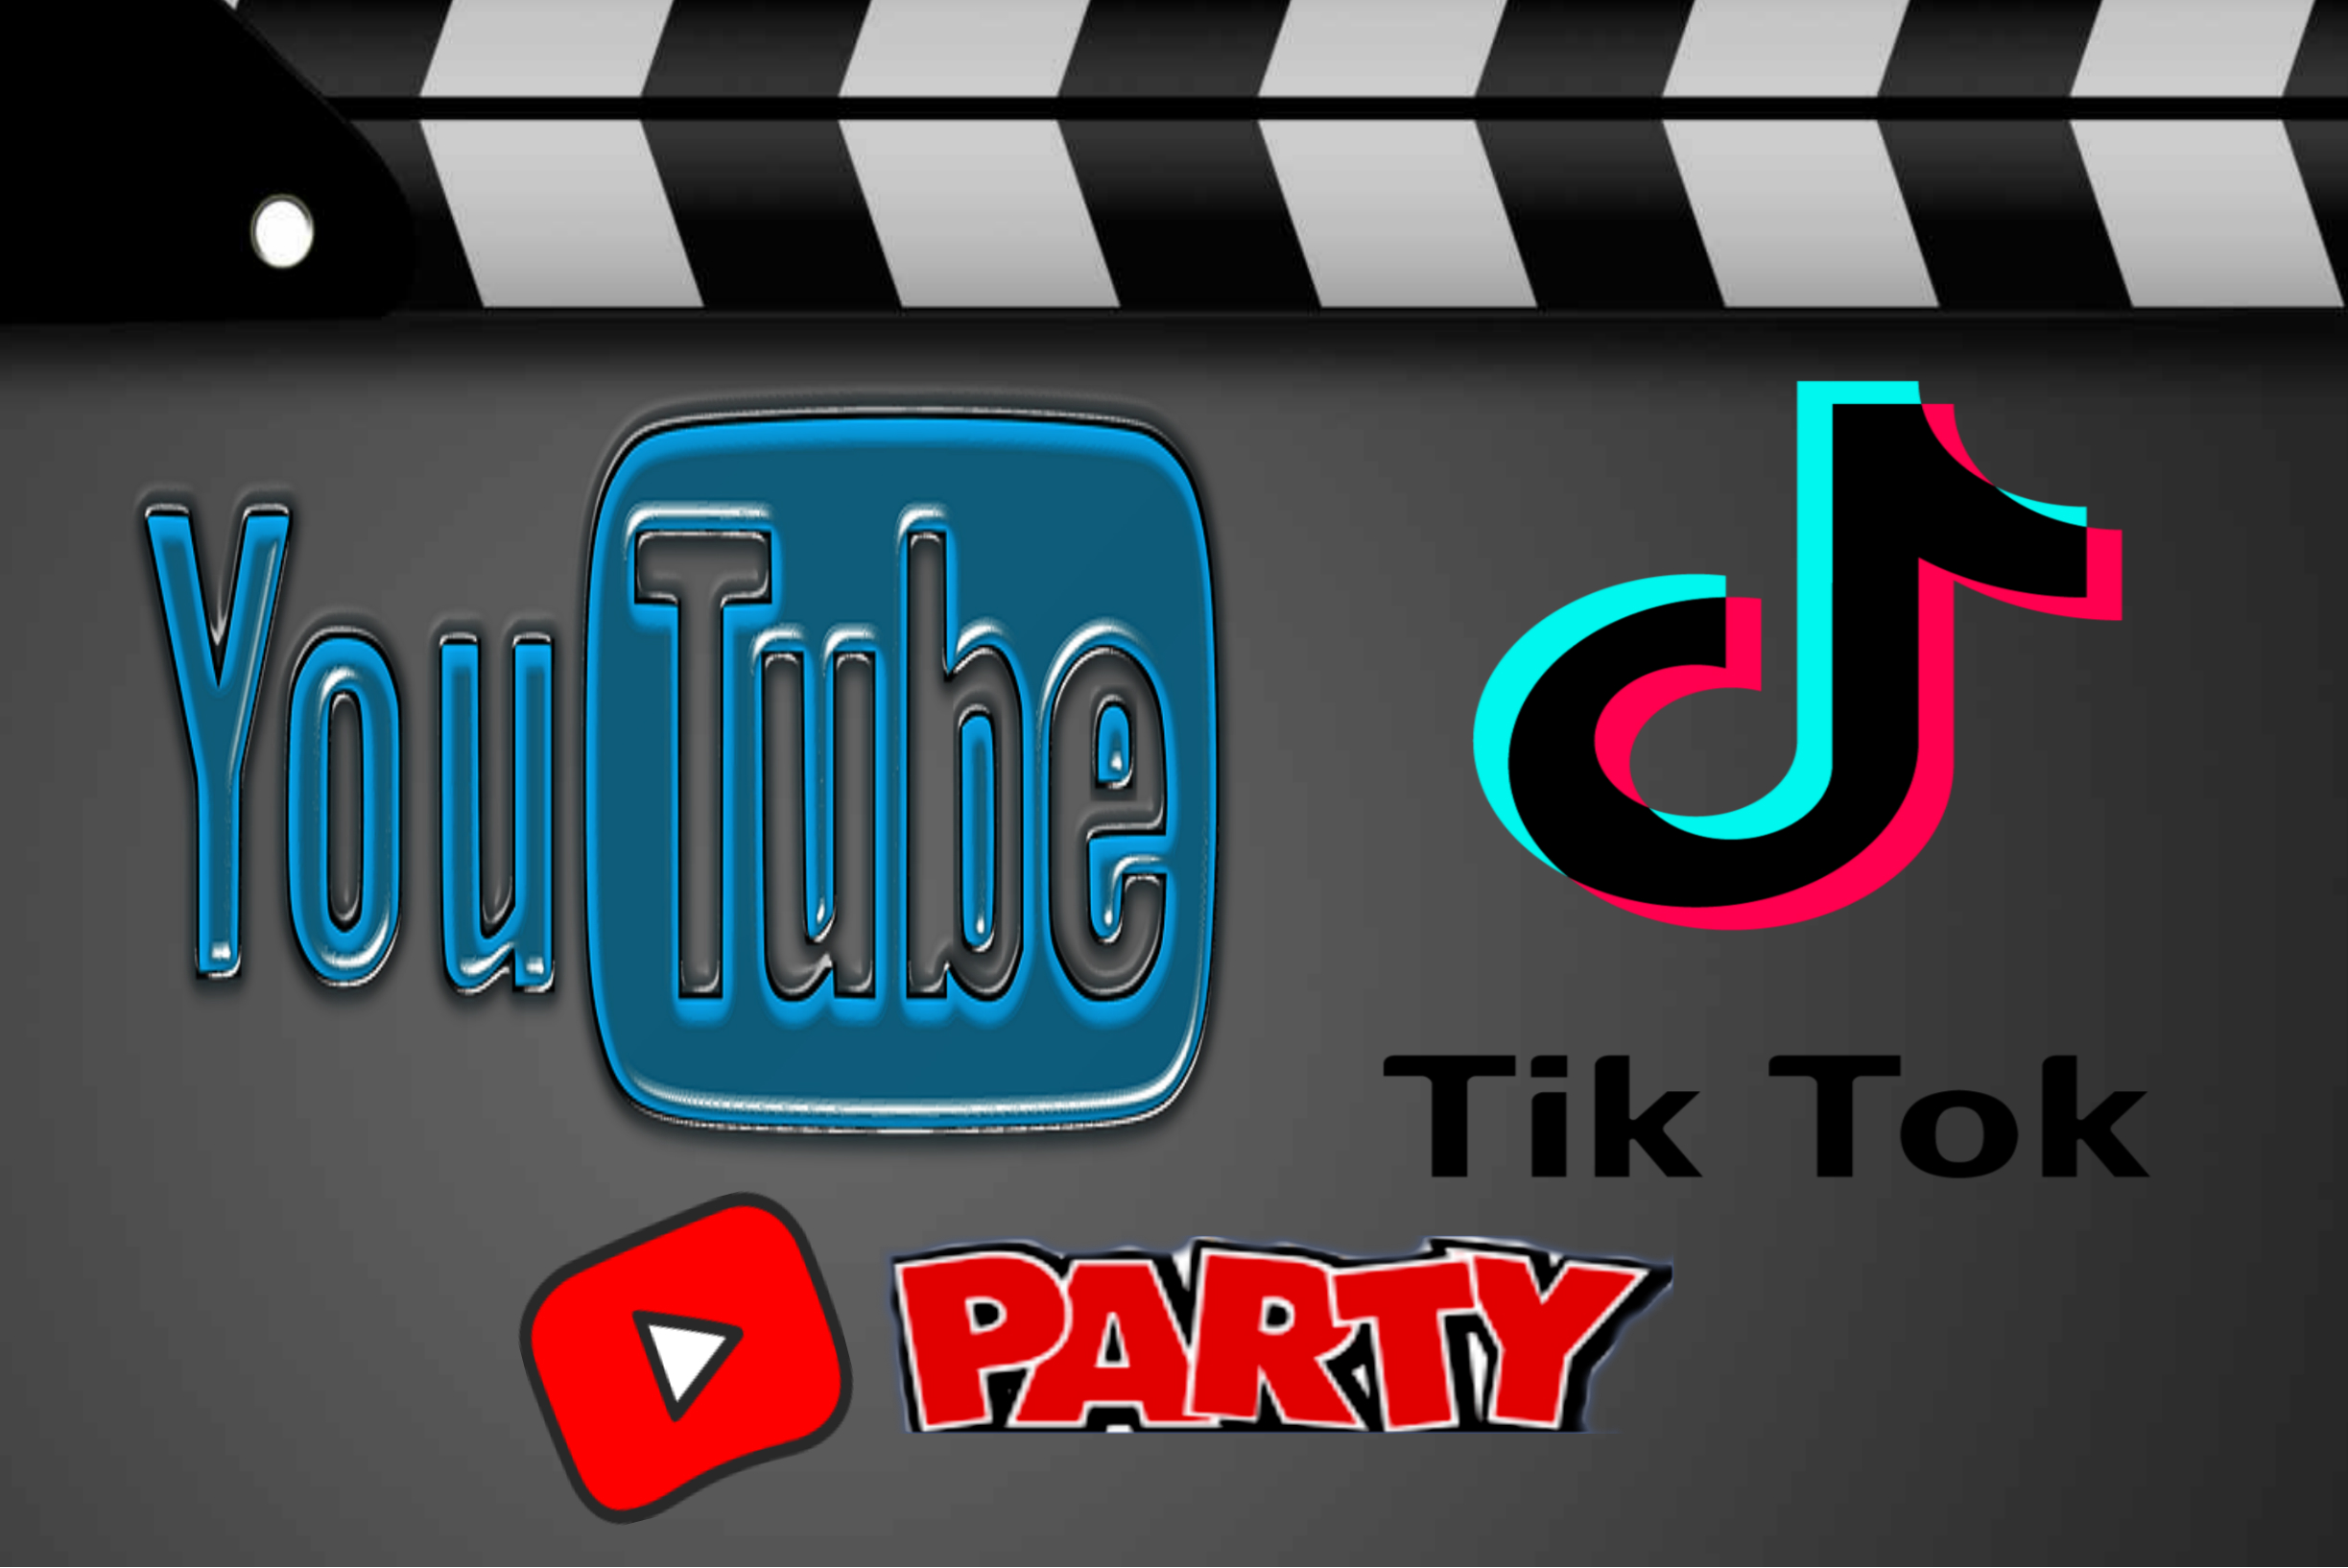 You Tube & Tik Tok party